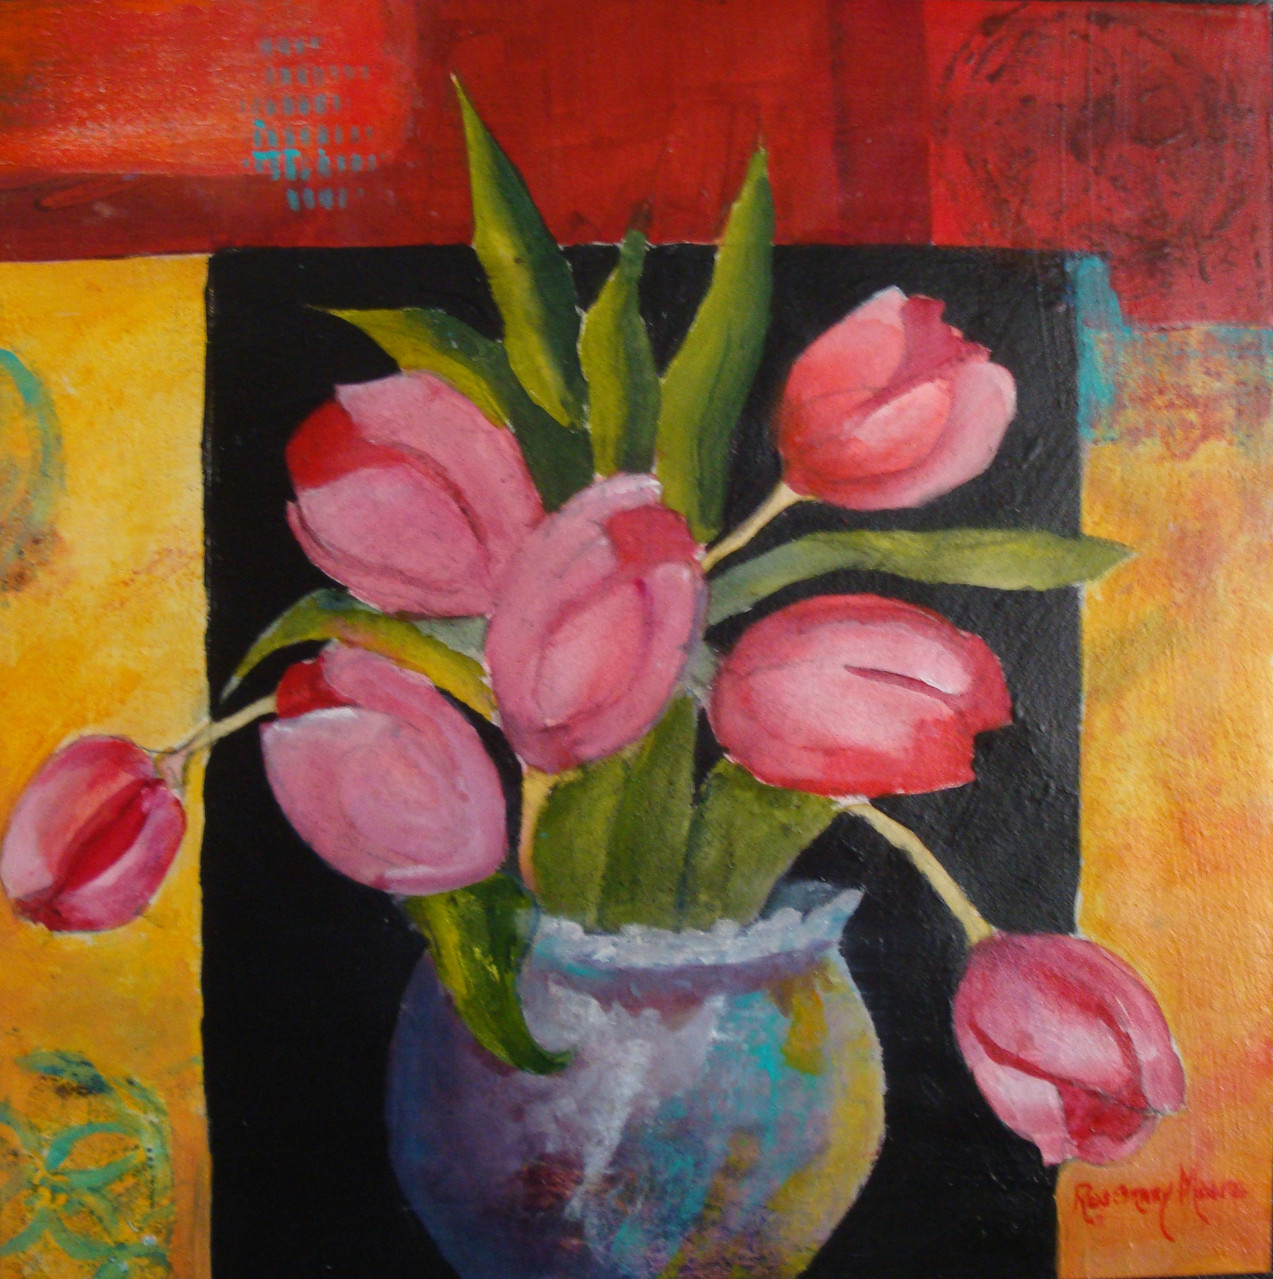 Spring Flowers by Rosemary Moore